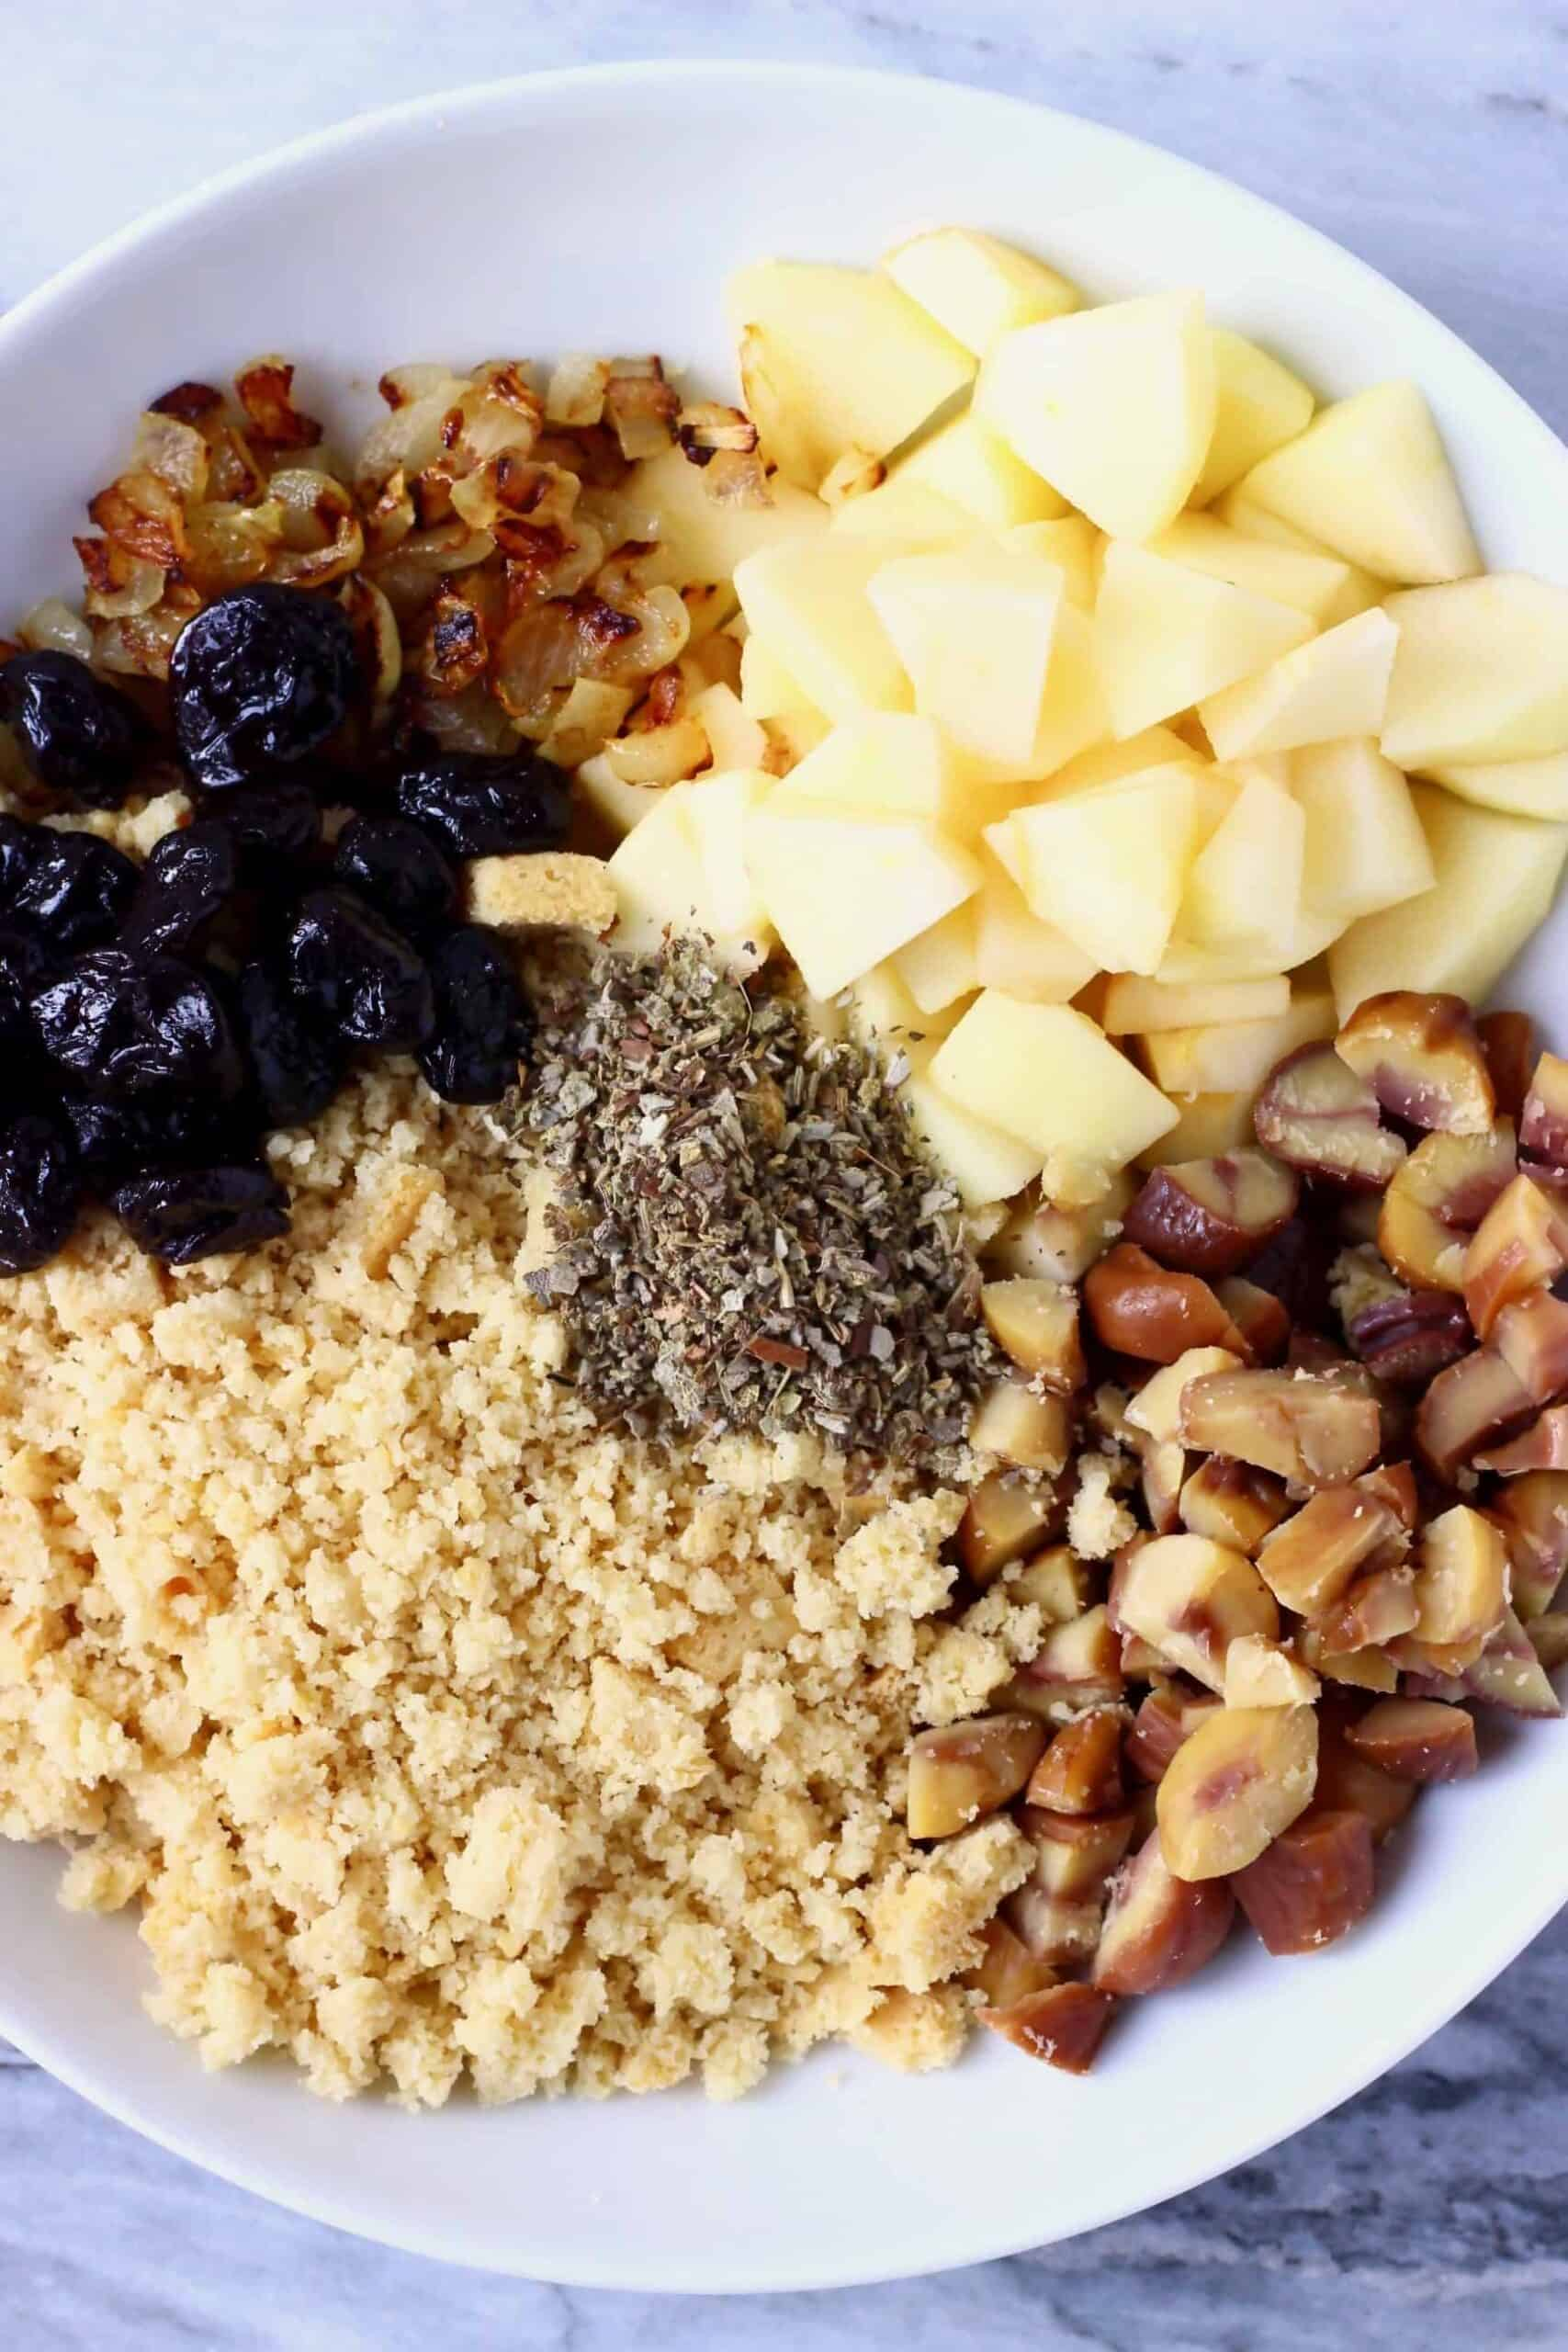 Diced apple, dried cherries, dried sage, chopped chestnuts, breadcrumbs and diced fried onion in a bowl